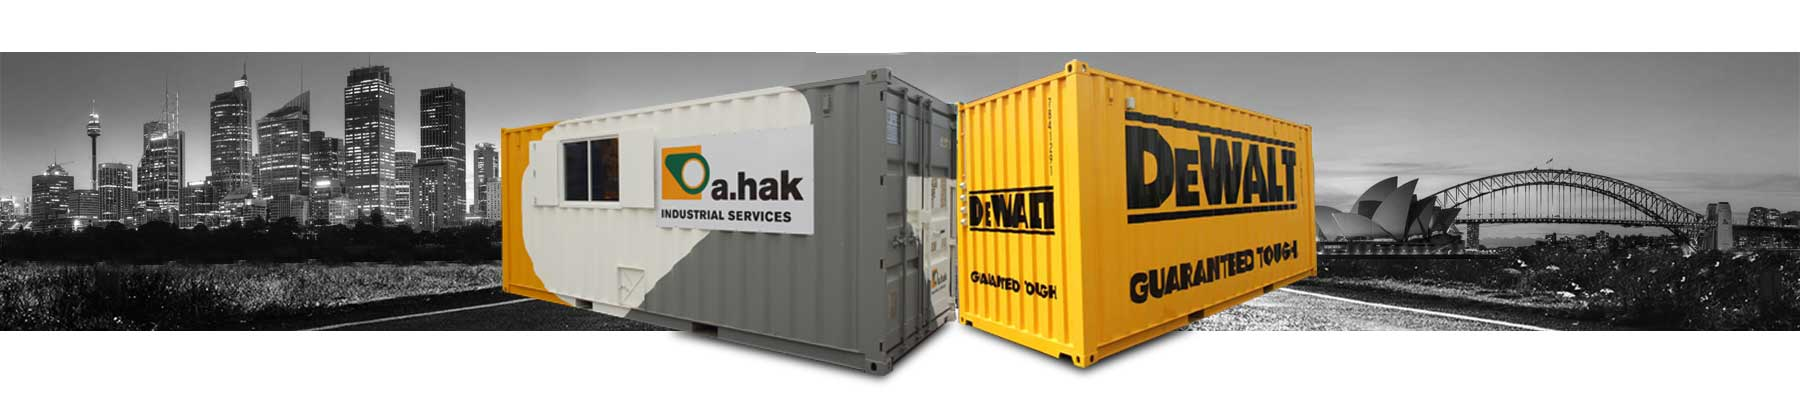 shipping-containers-sydney-modified-001